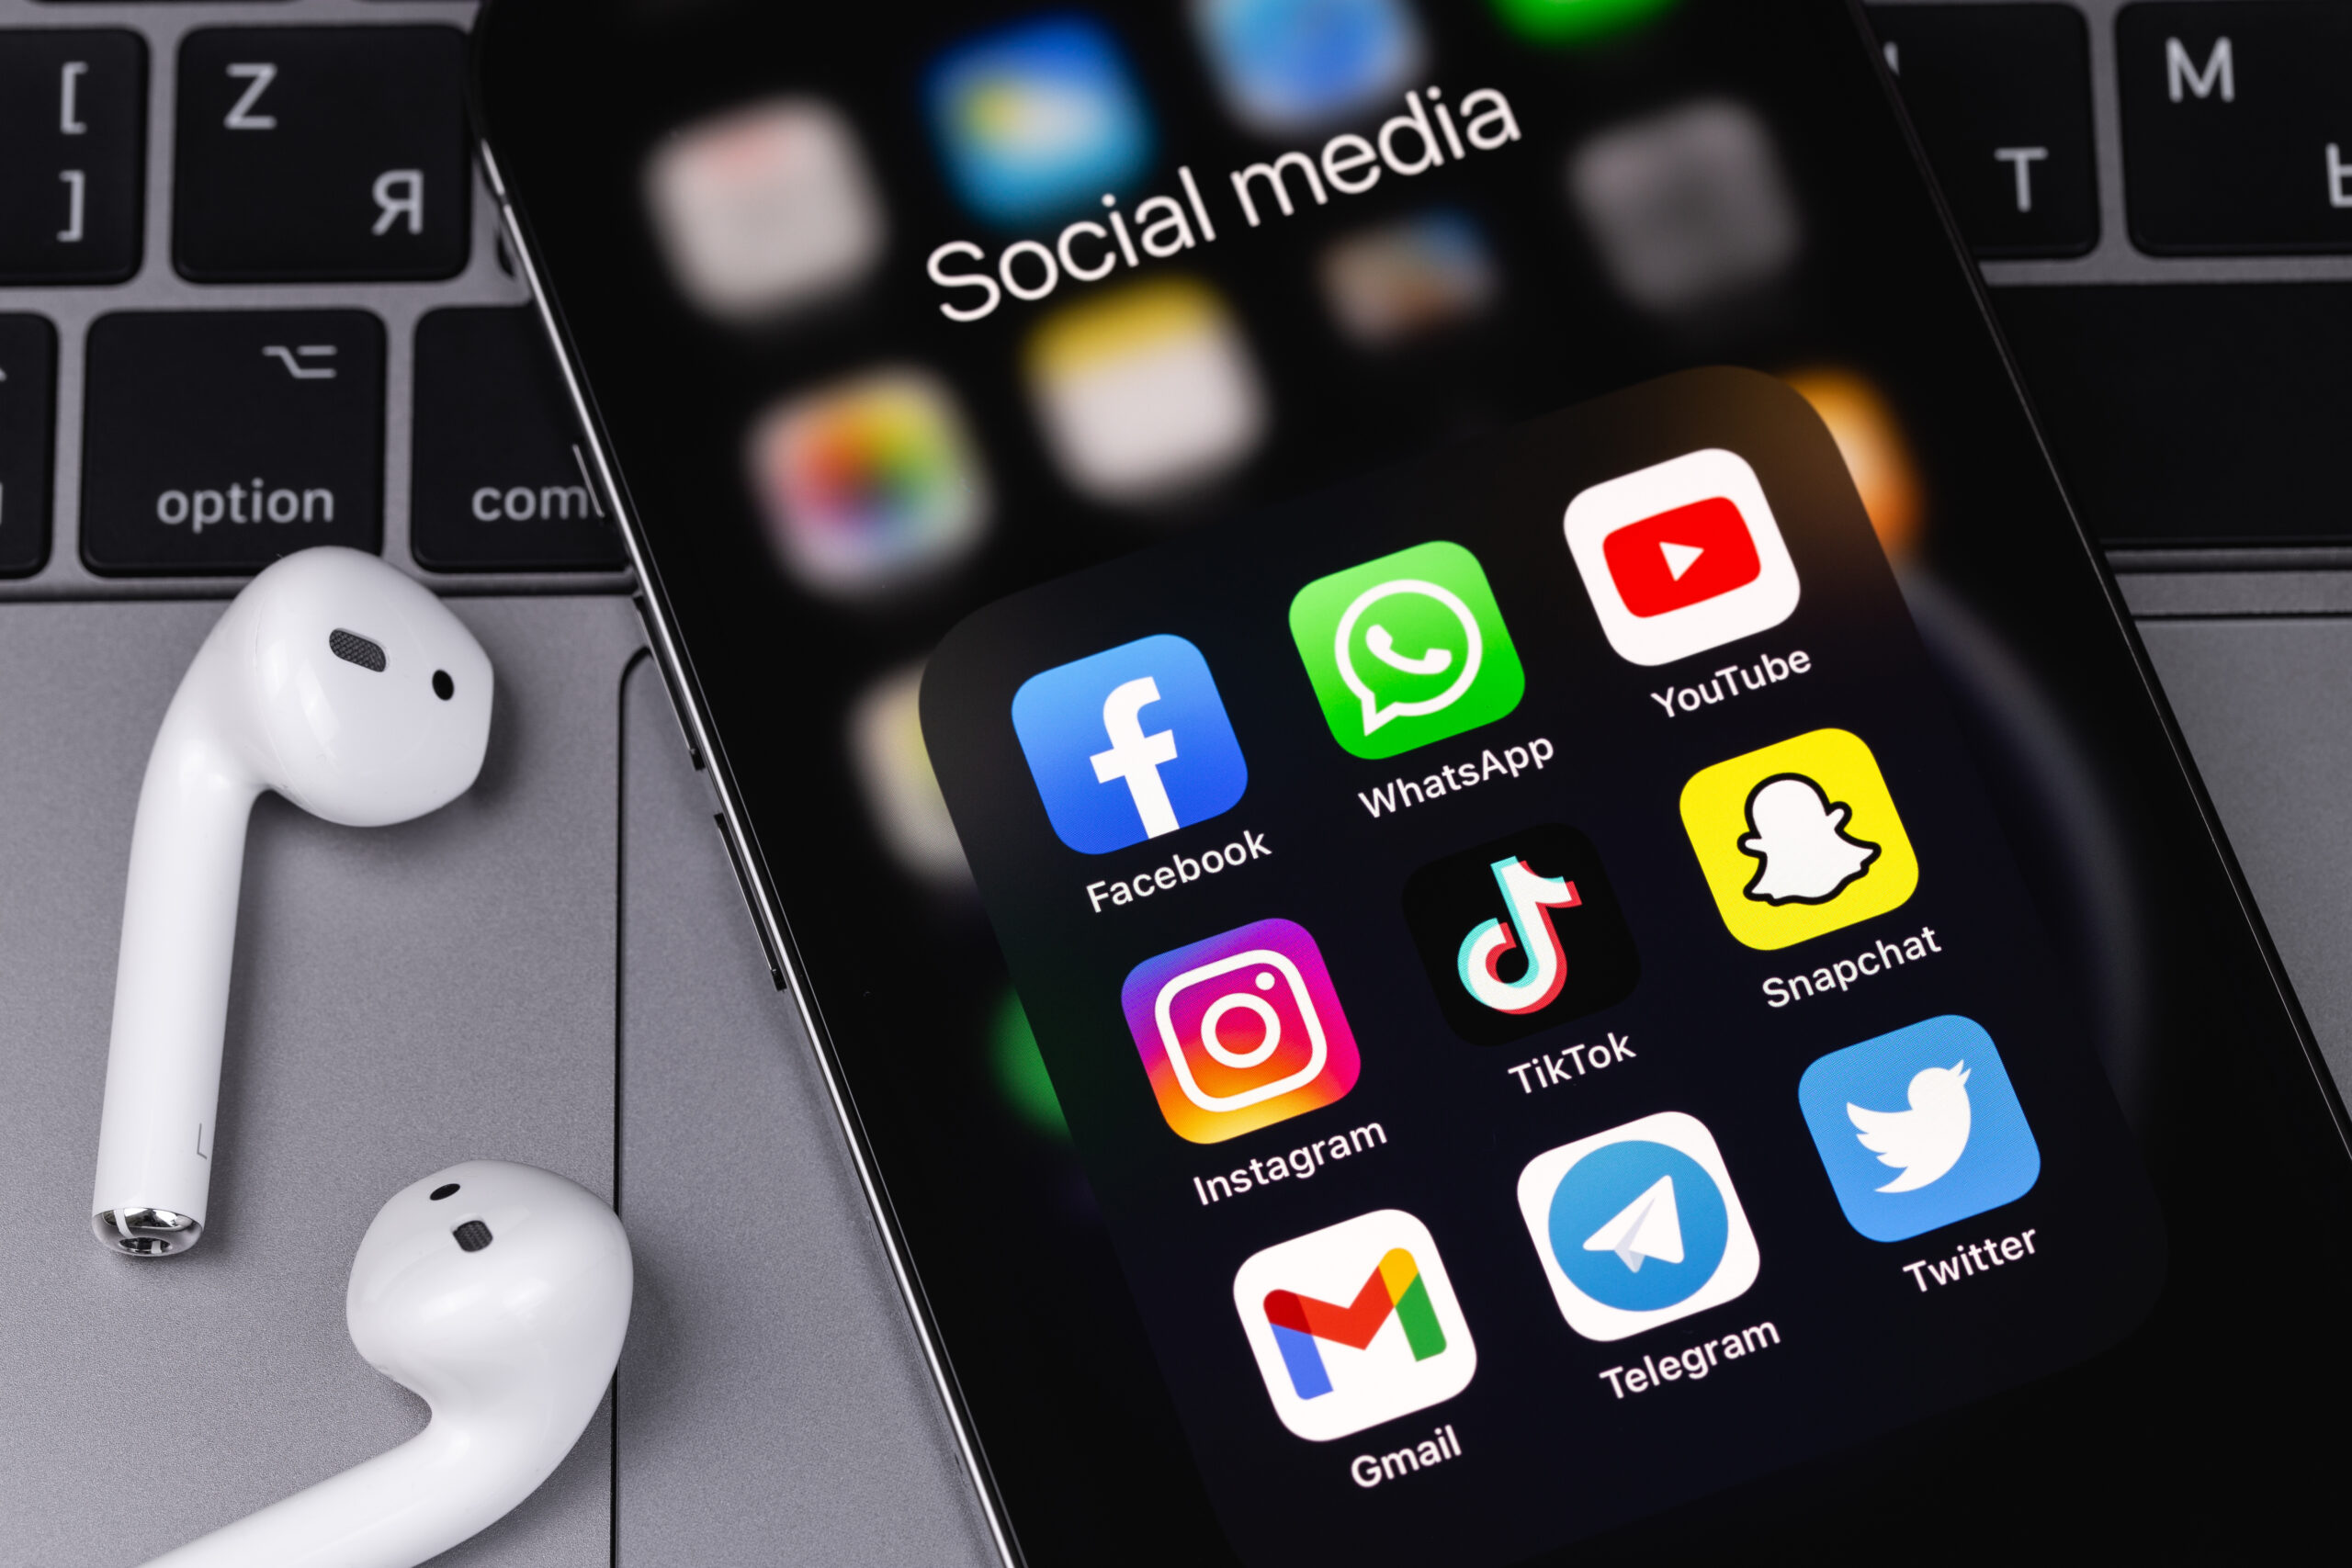 What are the legal considerations for social media advertising?